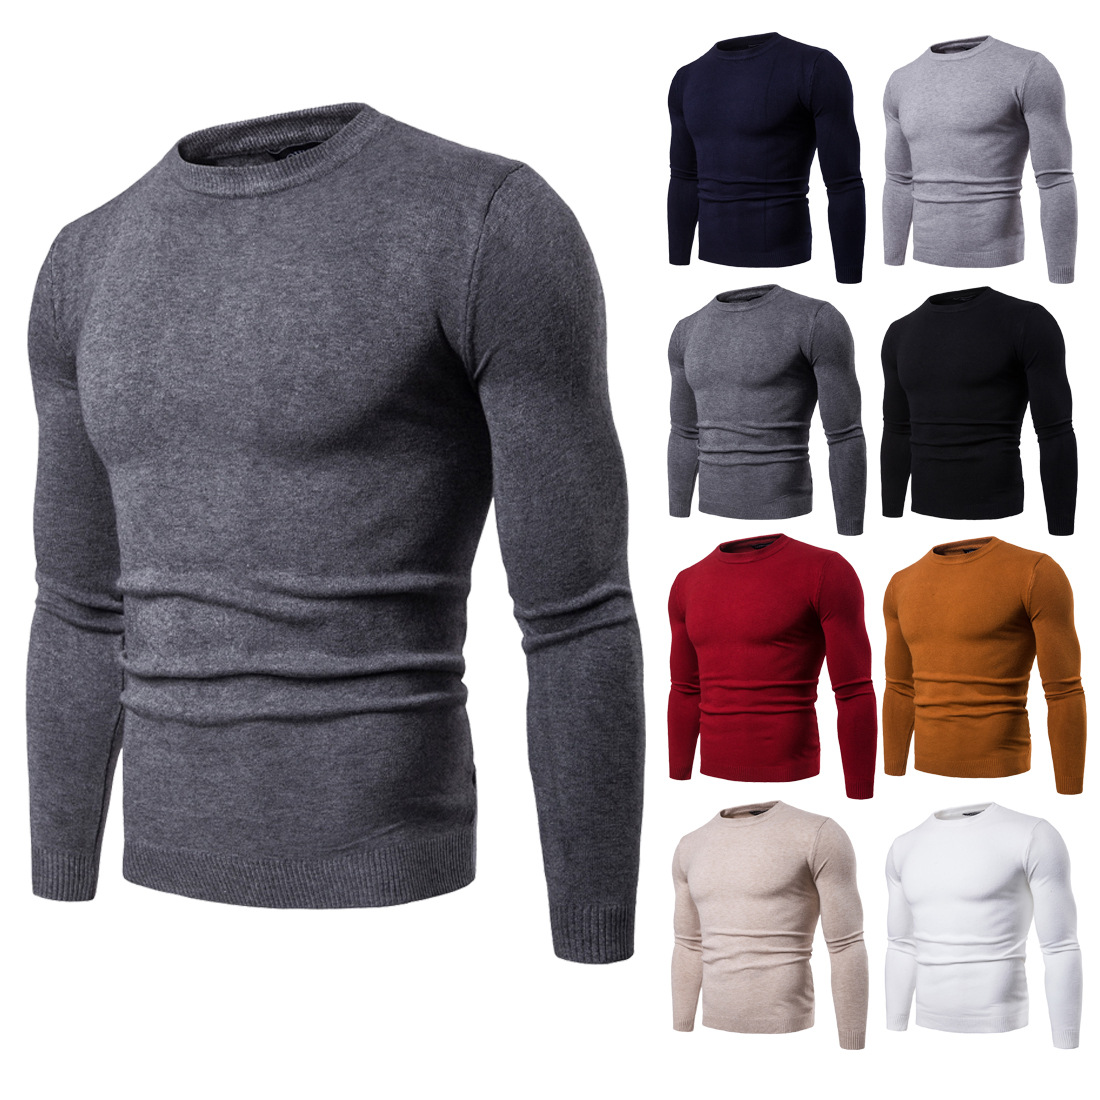 Sweater Men Spring Autumn New Style 2018 Men's Round Neck Sweater Solid Color Long-sleeve Men's Knitted Base Shirt Streetwear